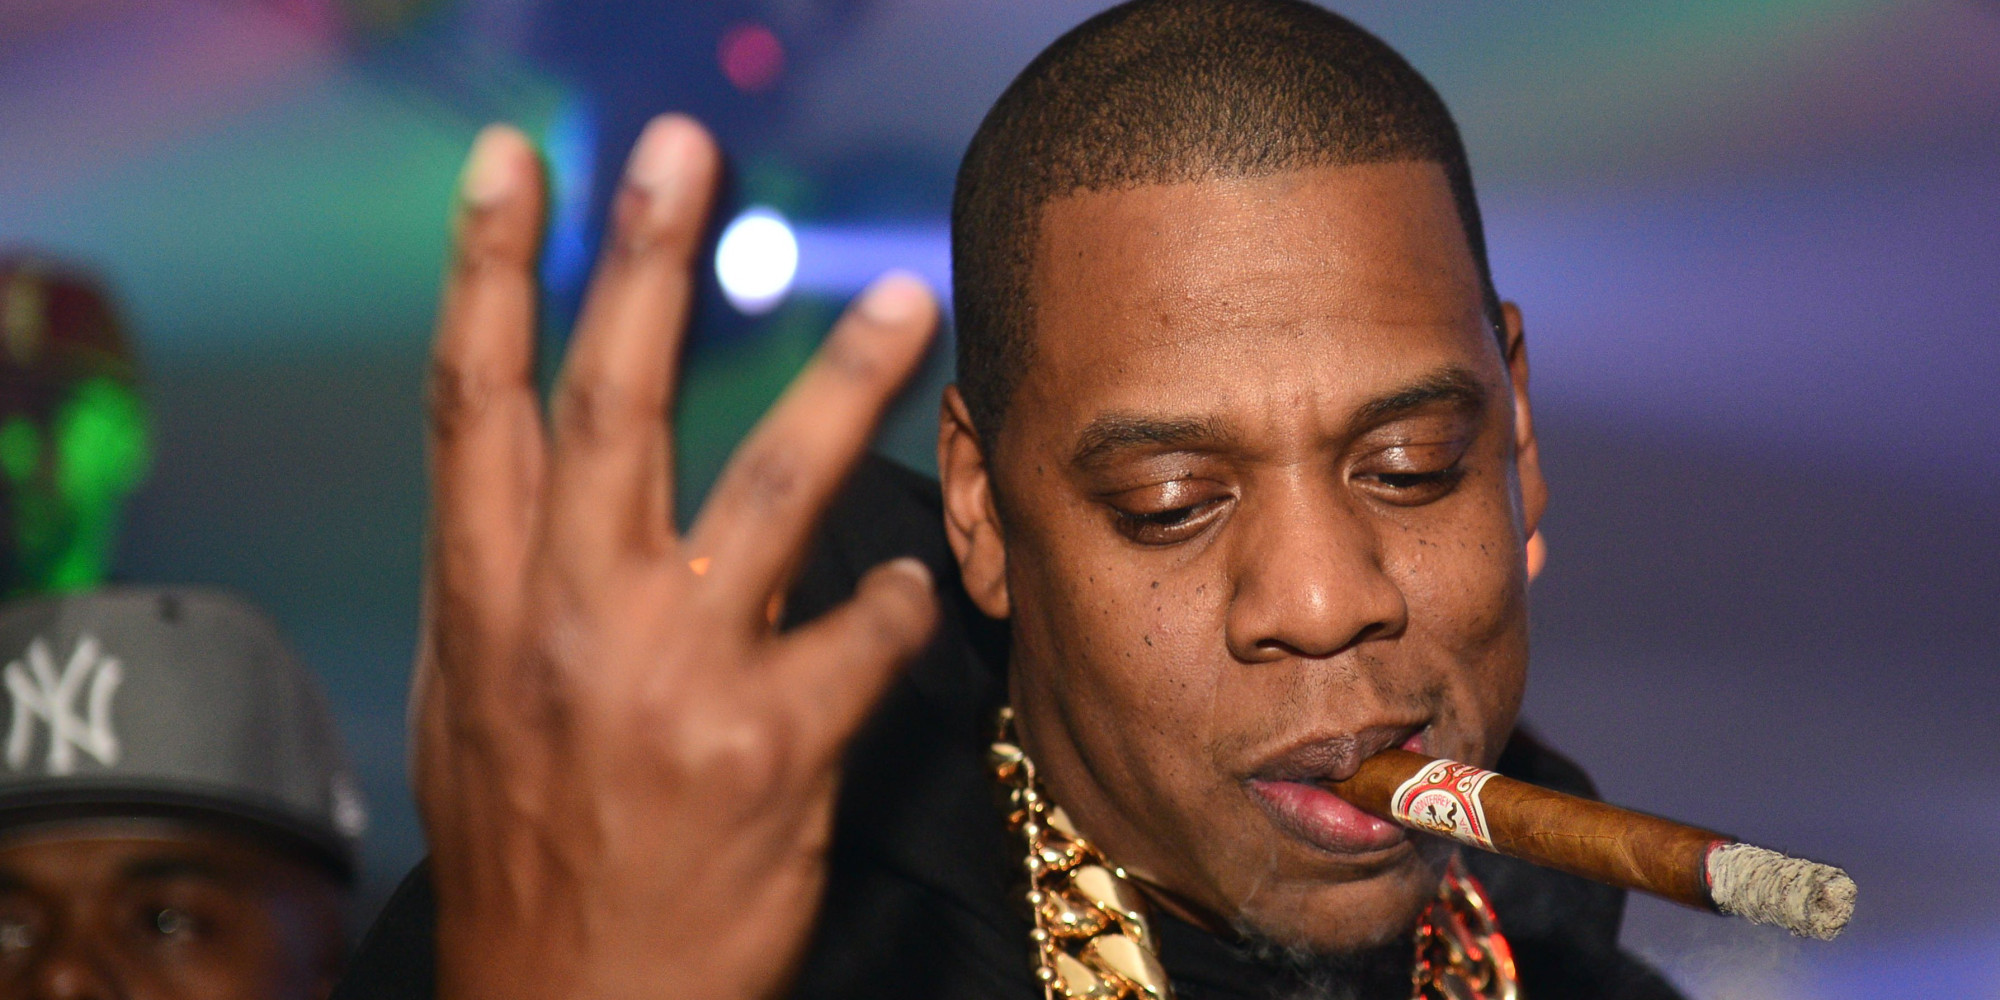 ATLANTA, GA - FEBRUARY 23: Jay-Z attends the So So Def anniversary party hosted by Jay Z at Compound on February 23, 2013 in Atlanta, Georgia. (Photo by Prince Williams/Getty Images)